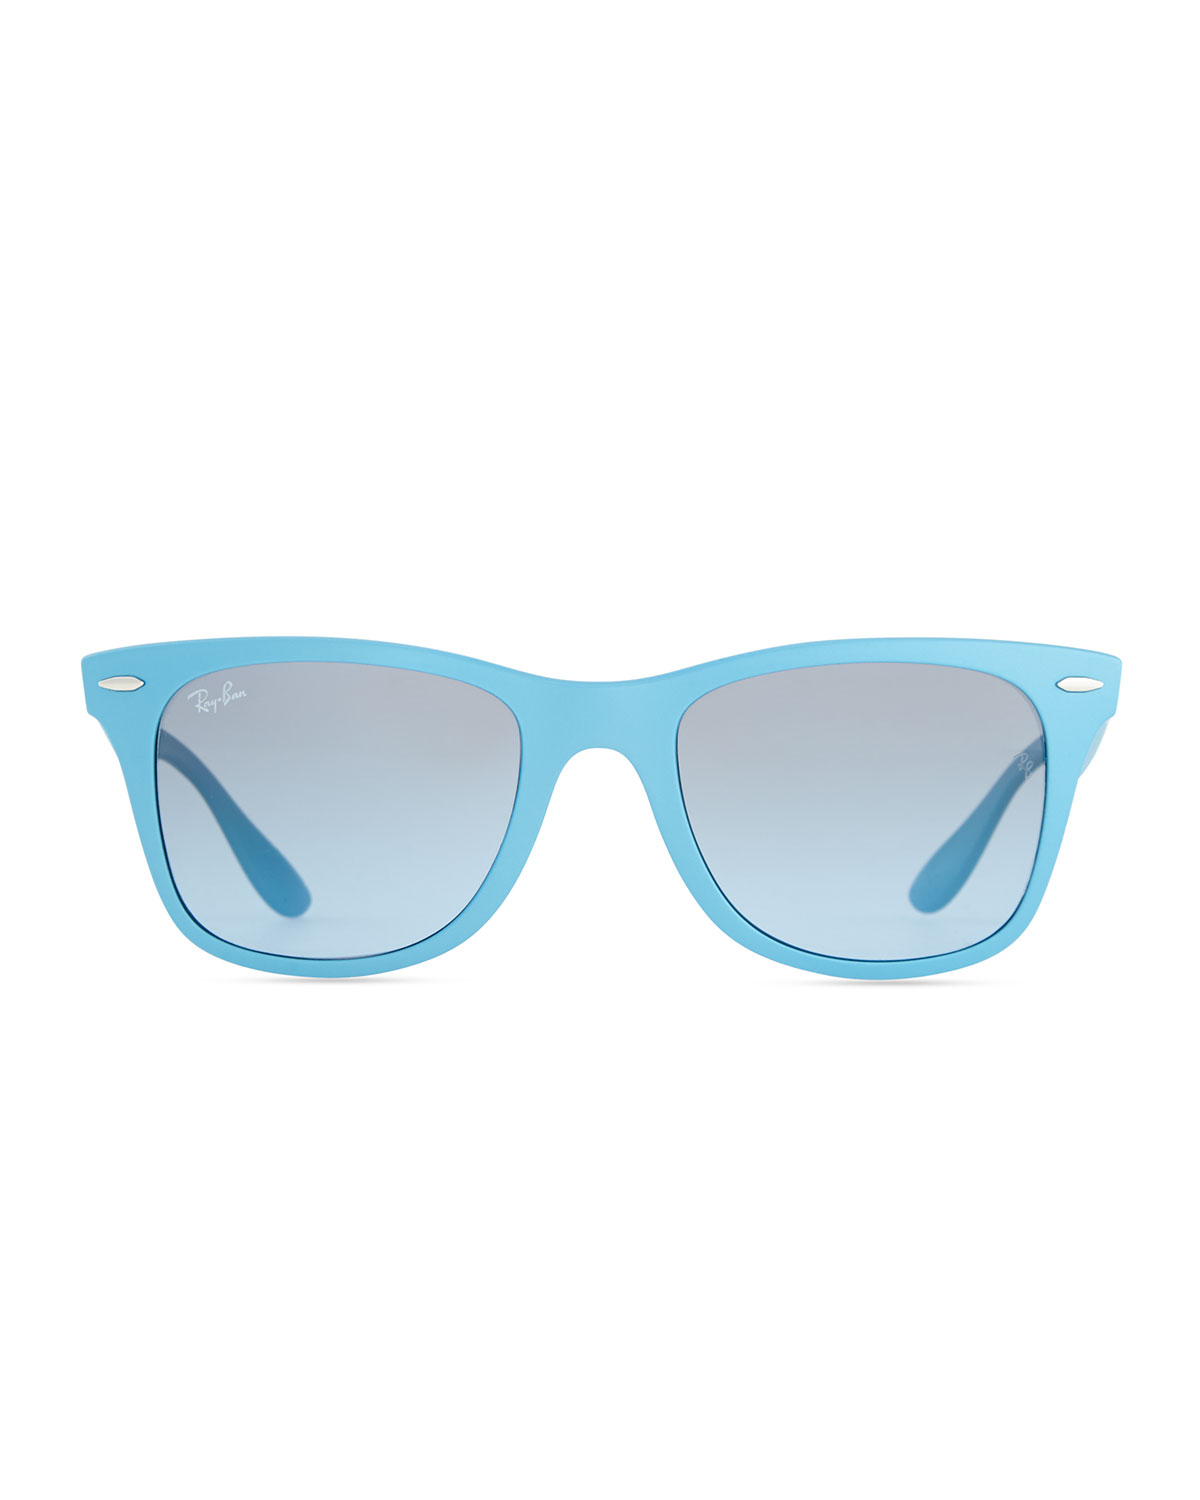 867c014a50 ... ireland lyst ray ban liteforce tech wayfarer sunglasses light blue in  blue 8f70a 8e85a